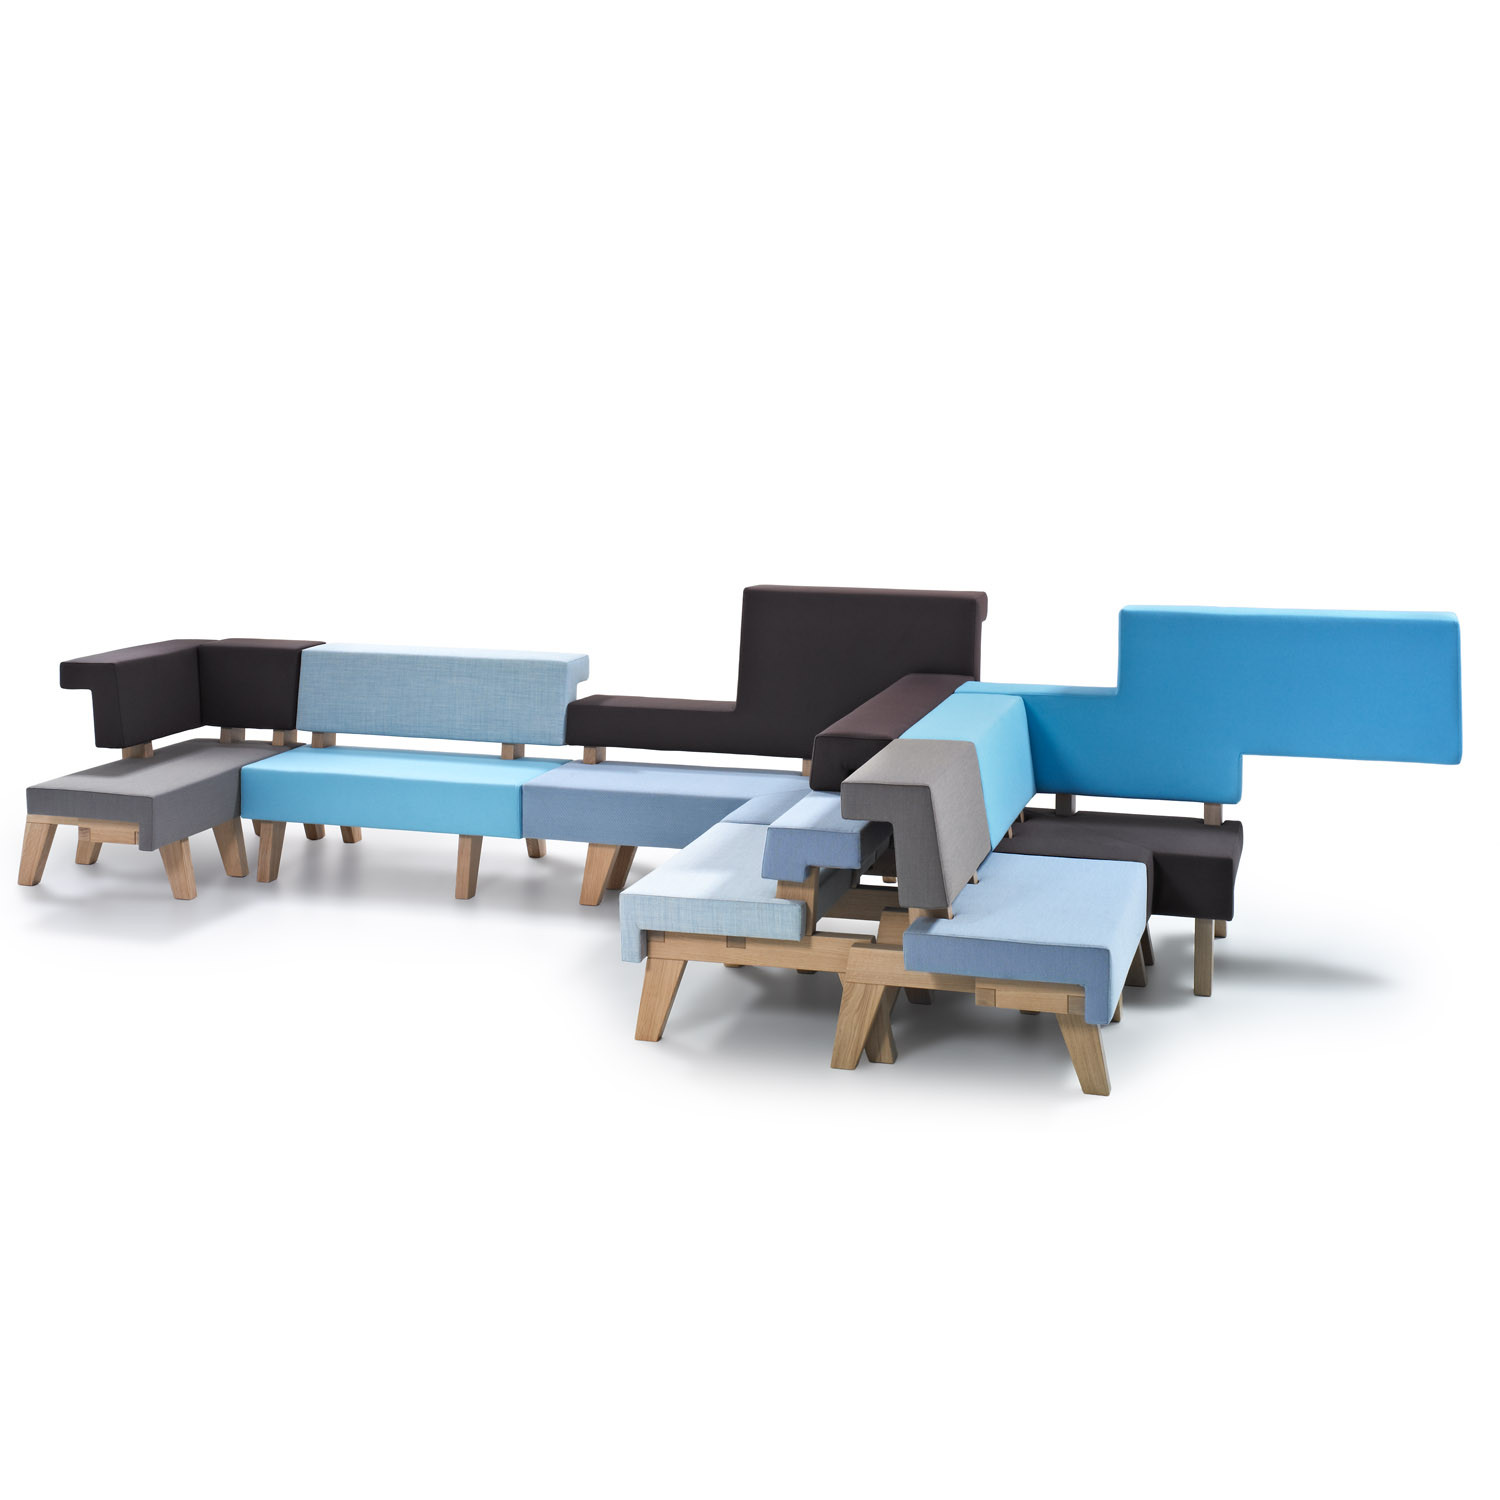 #002 WorkSofa from PROOFF